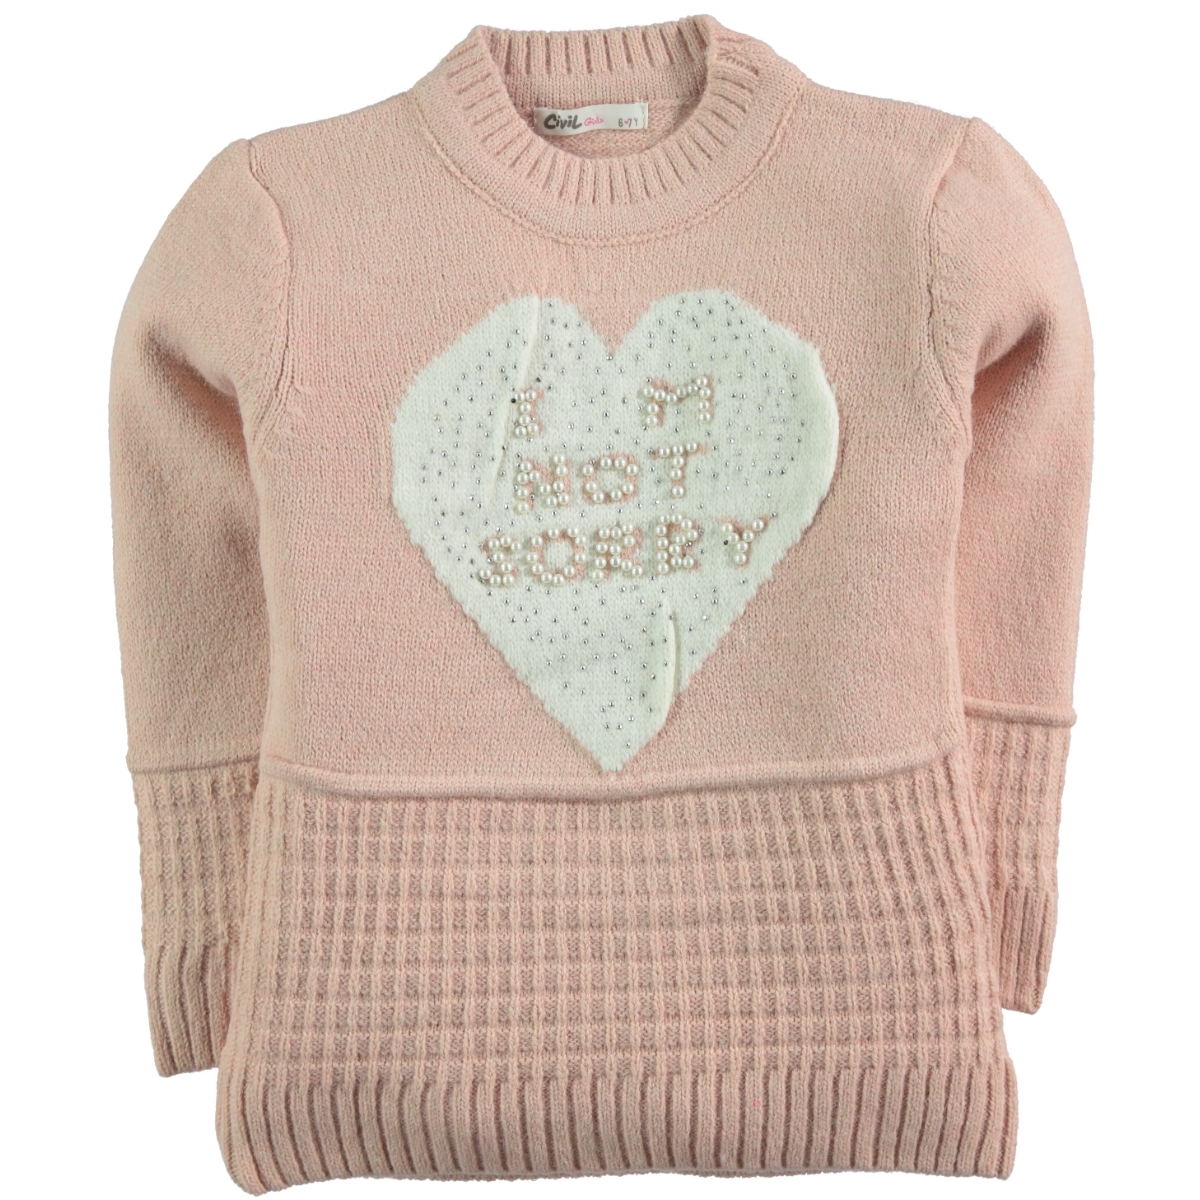 Civil Girls The Powder Pink Sweater Girl Age 6-9